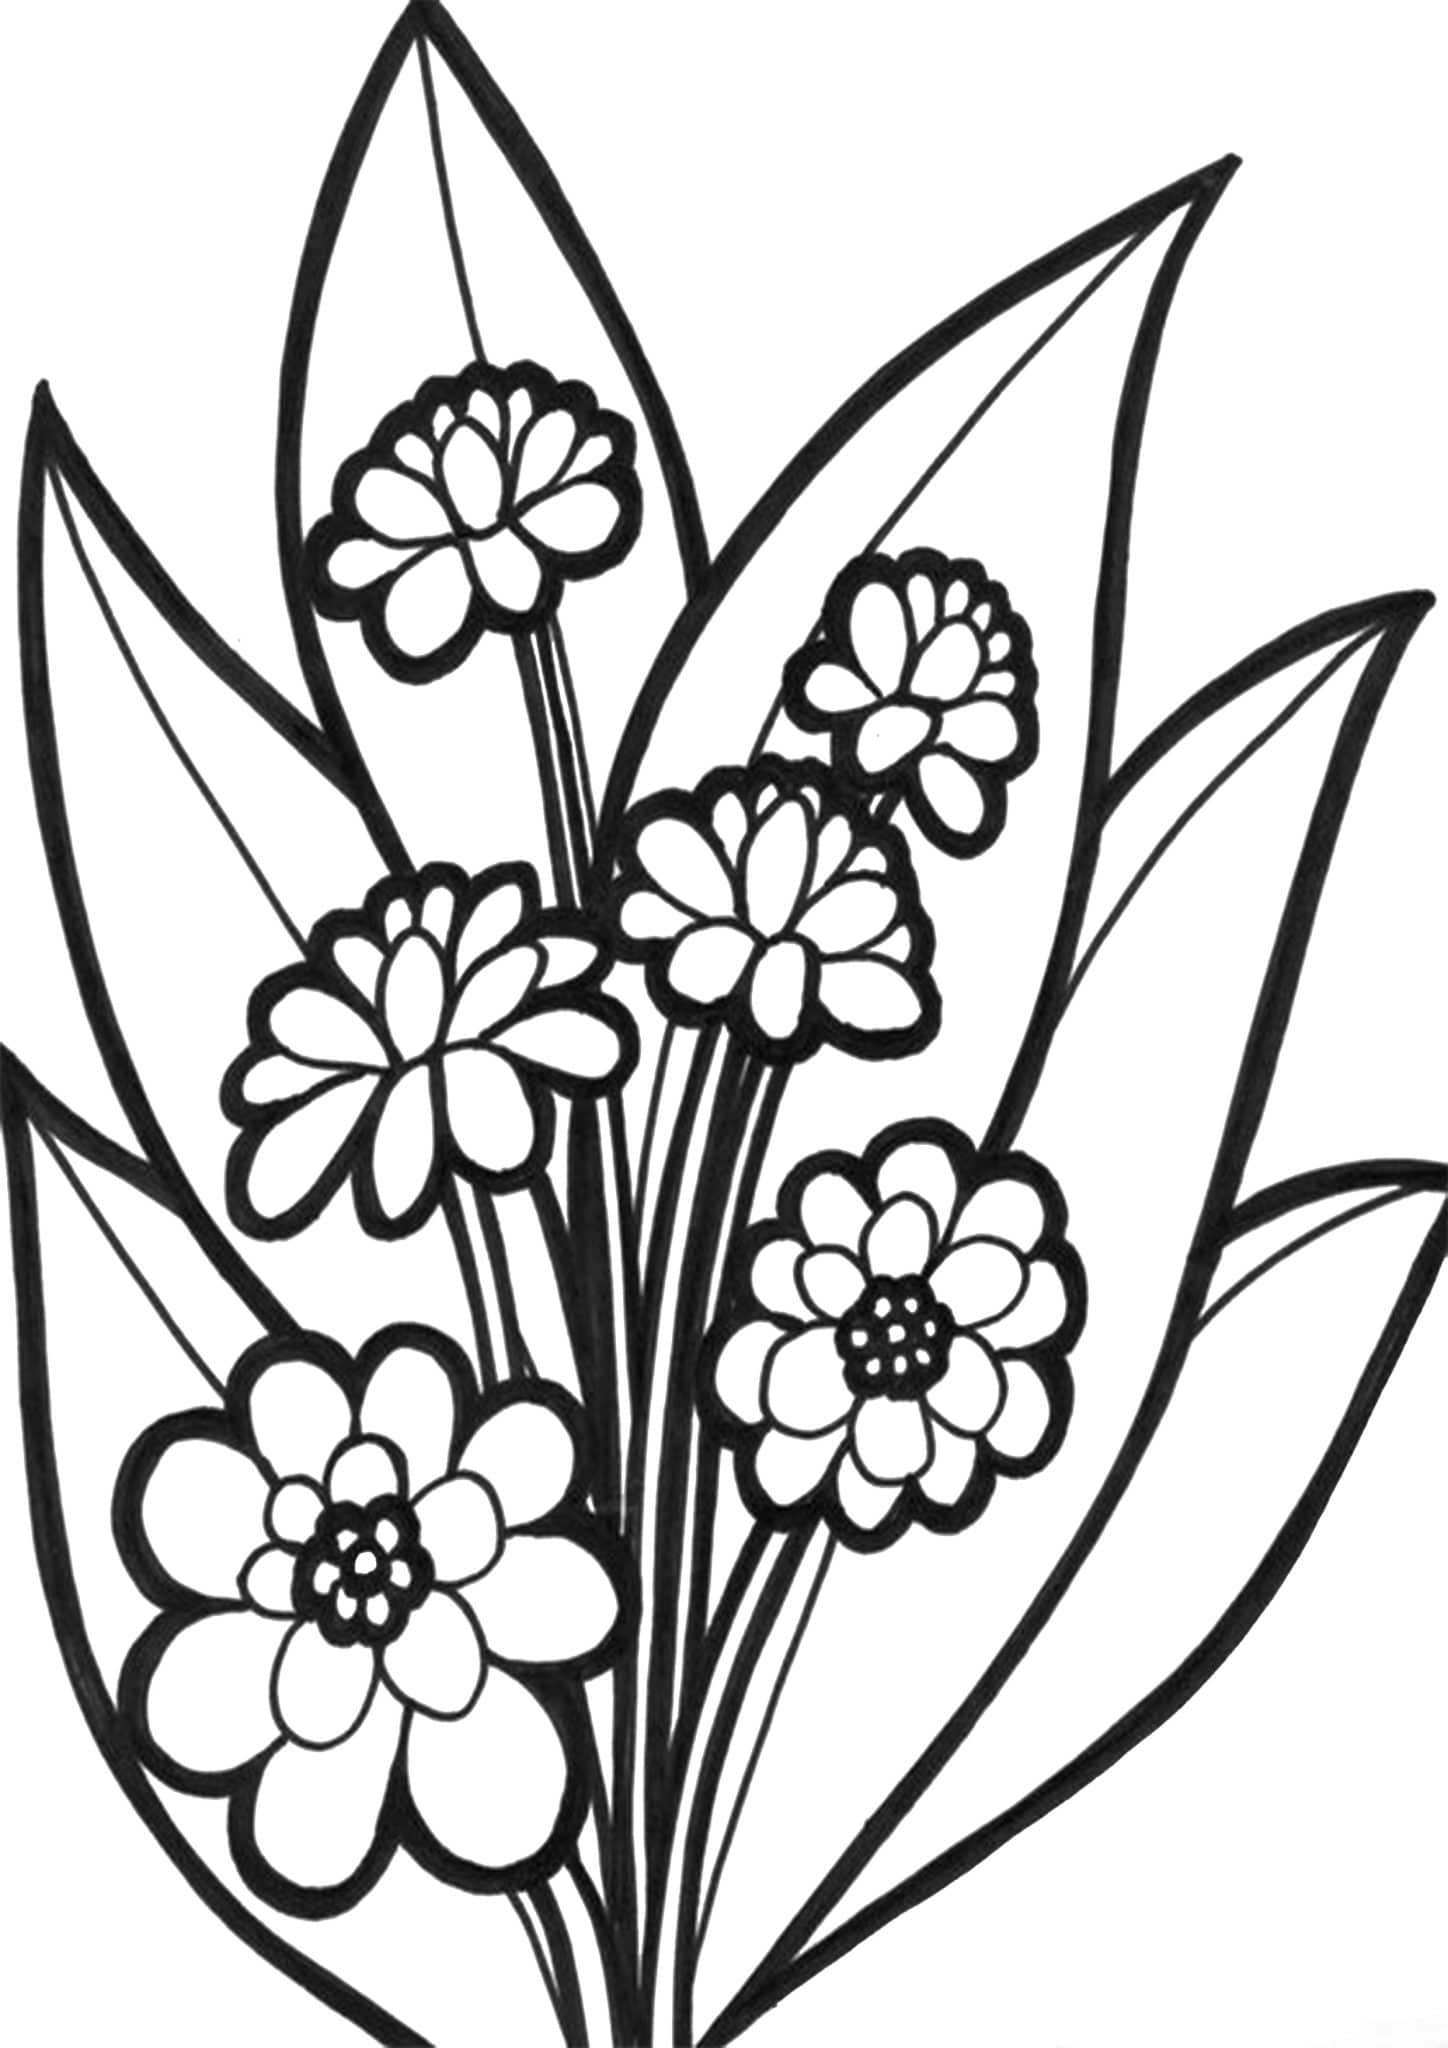 flower coloring pages printables detailed flower coloring pages to download and print for free coloring printables flower pages